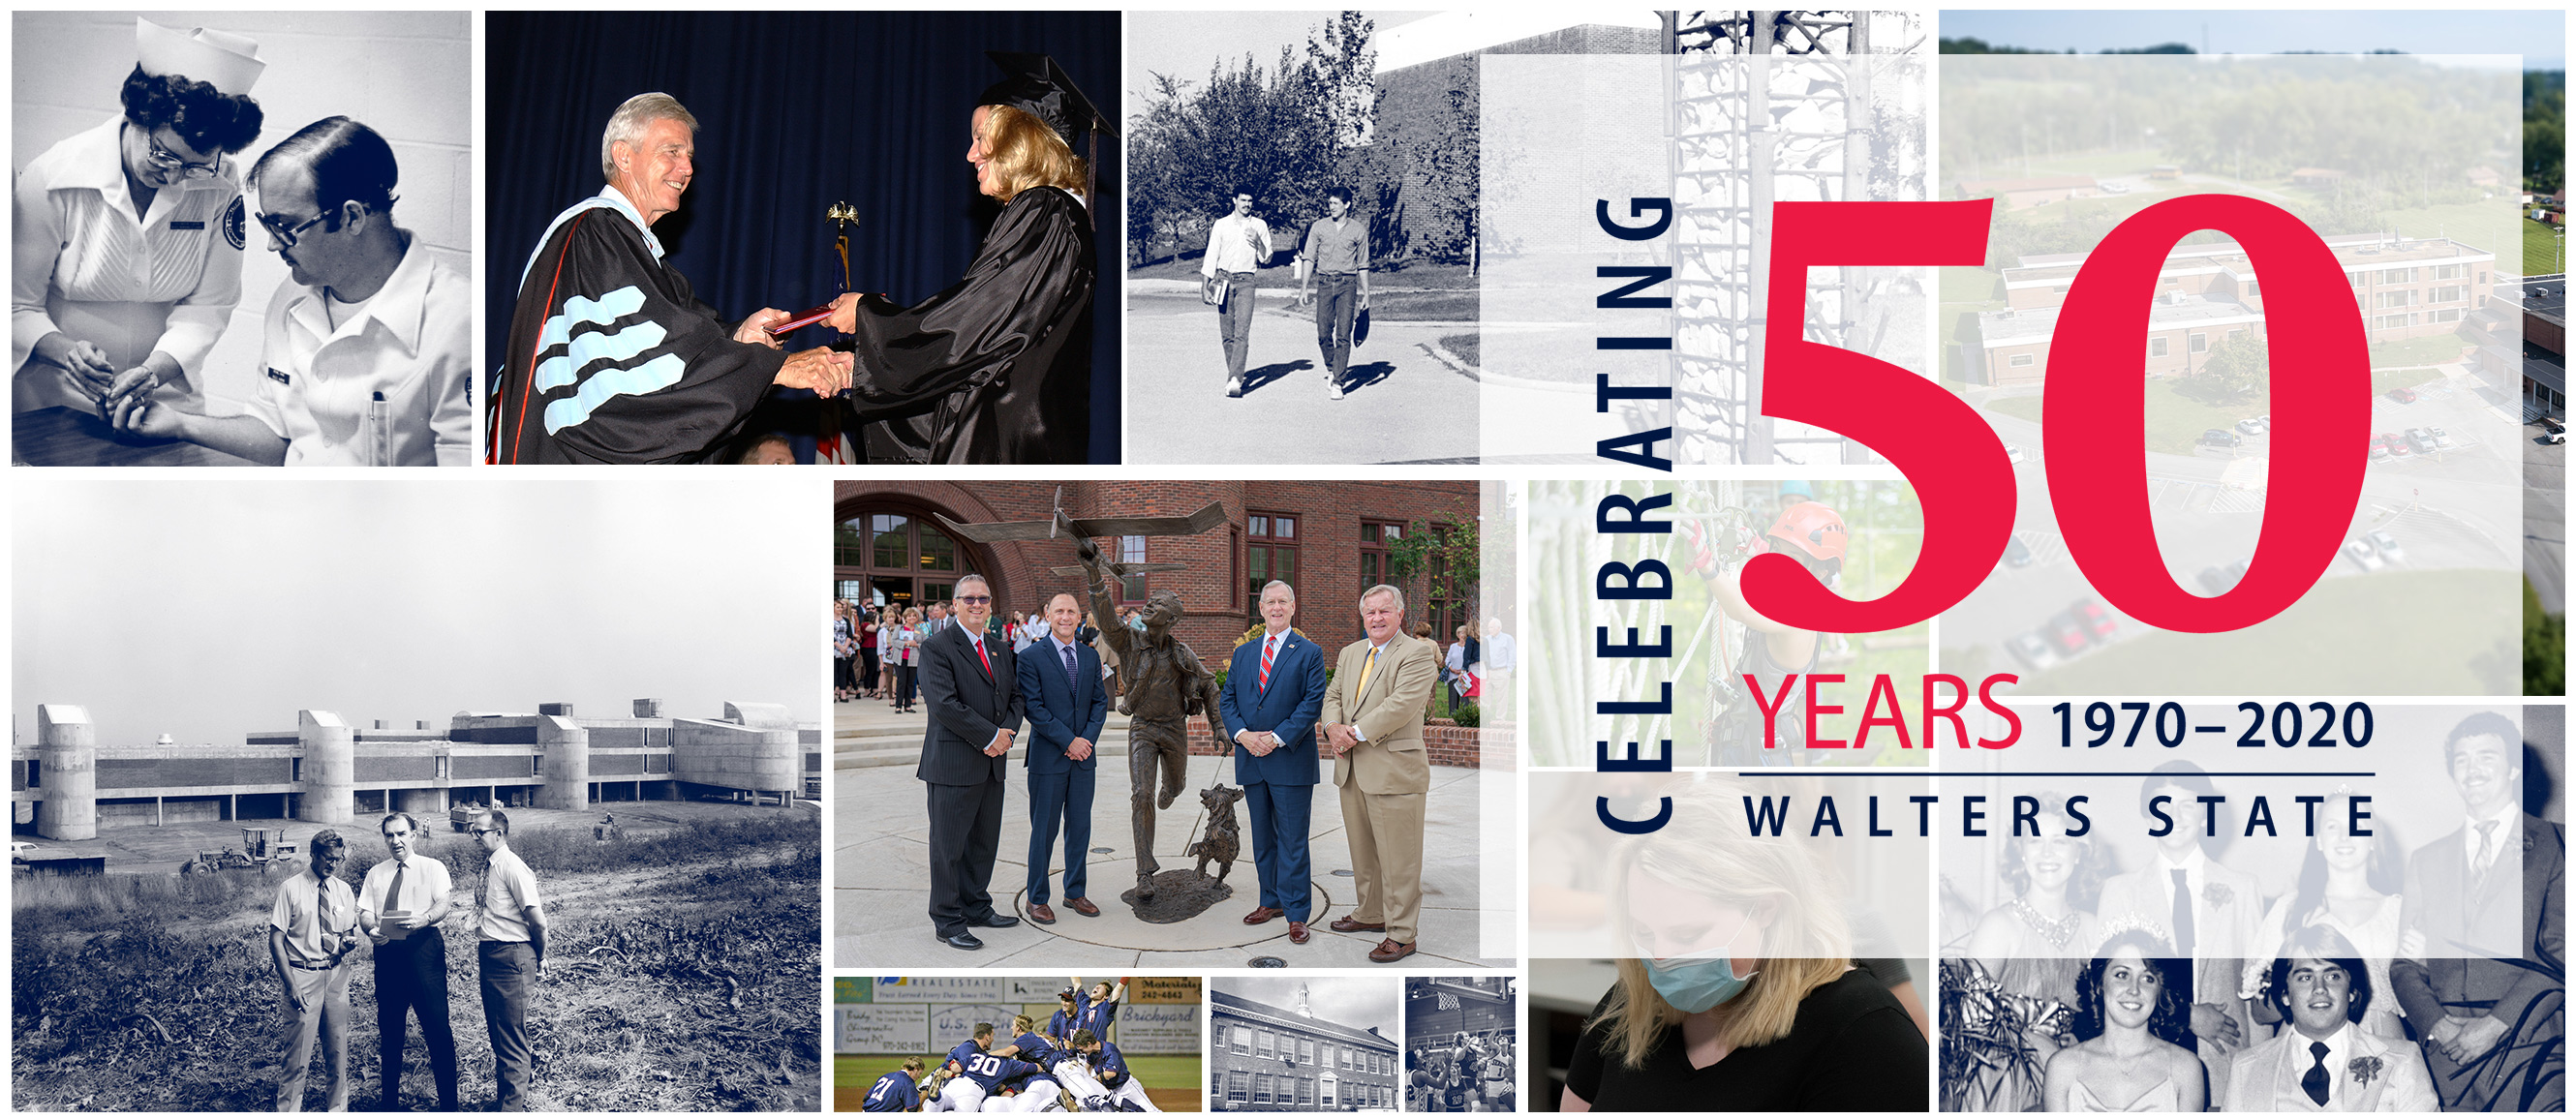 Celebrating 50 Years 1970-2020 Walters State